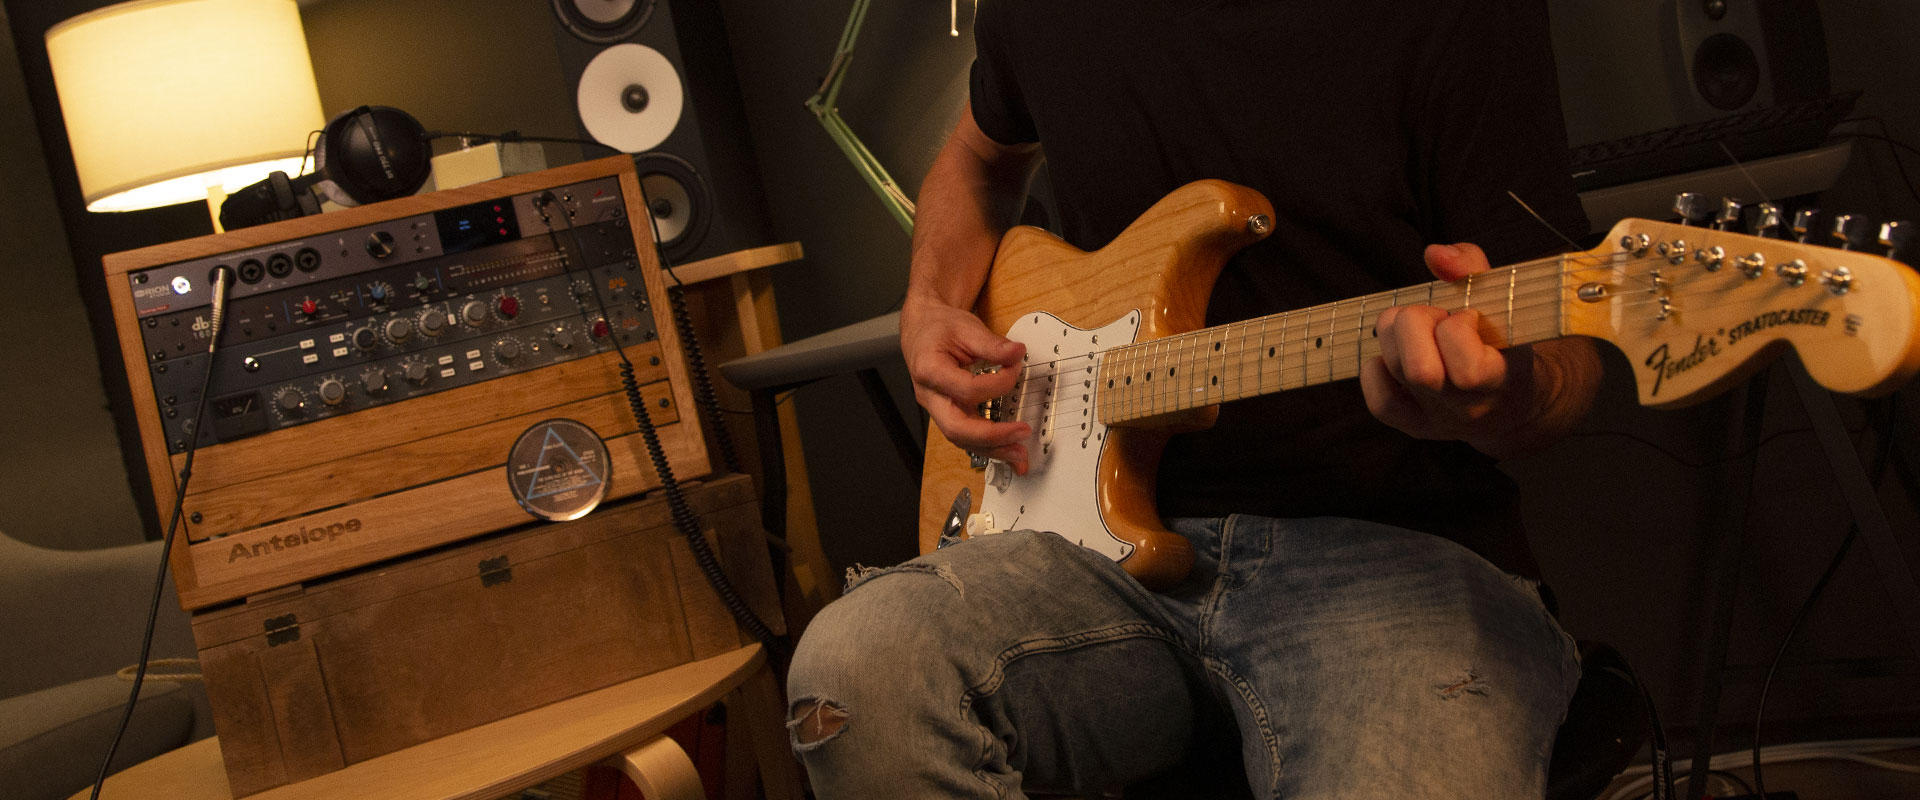 Make Studio-Quality Music at Home with Antelope Audio Interfaces